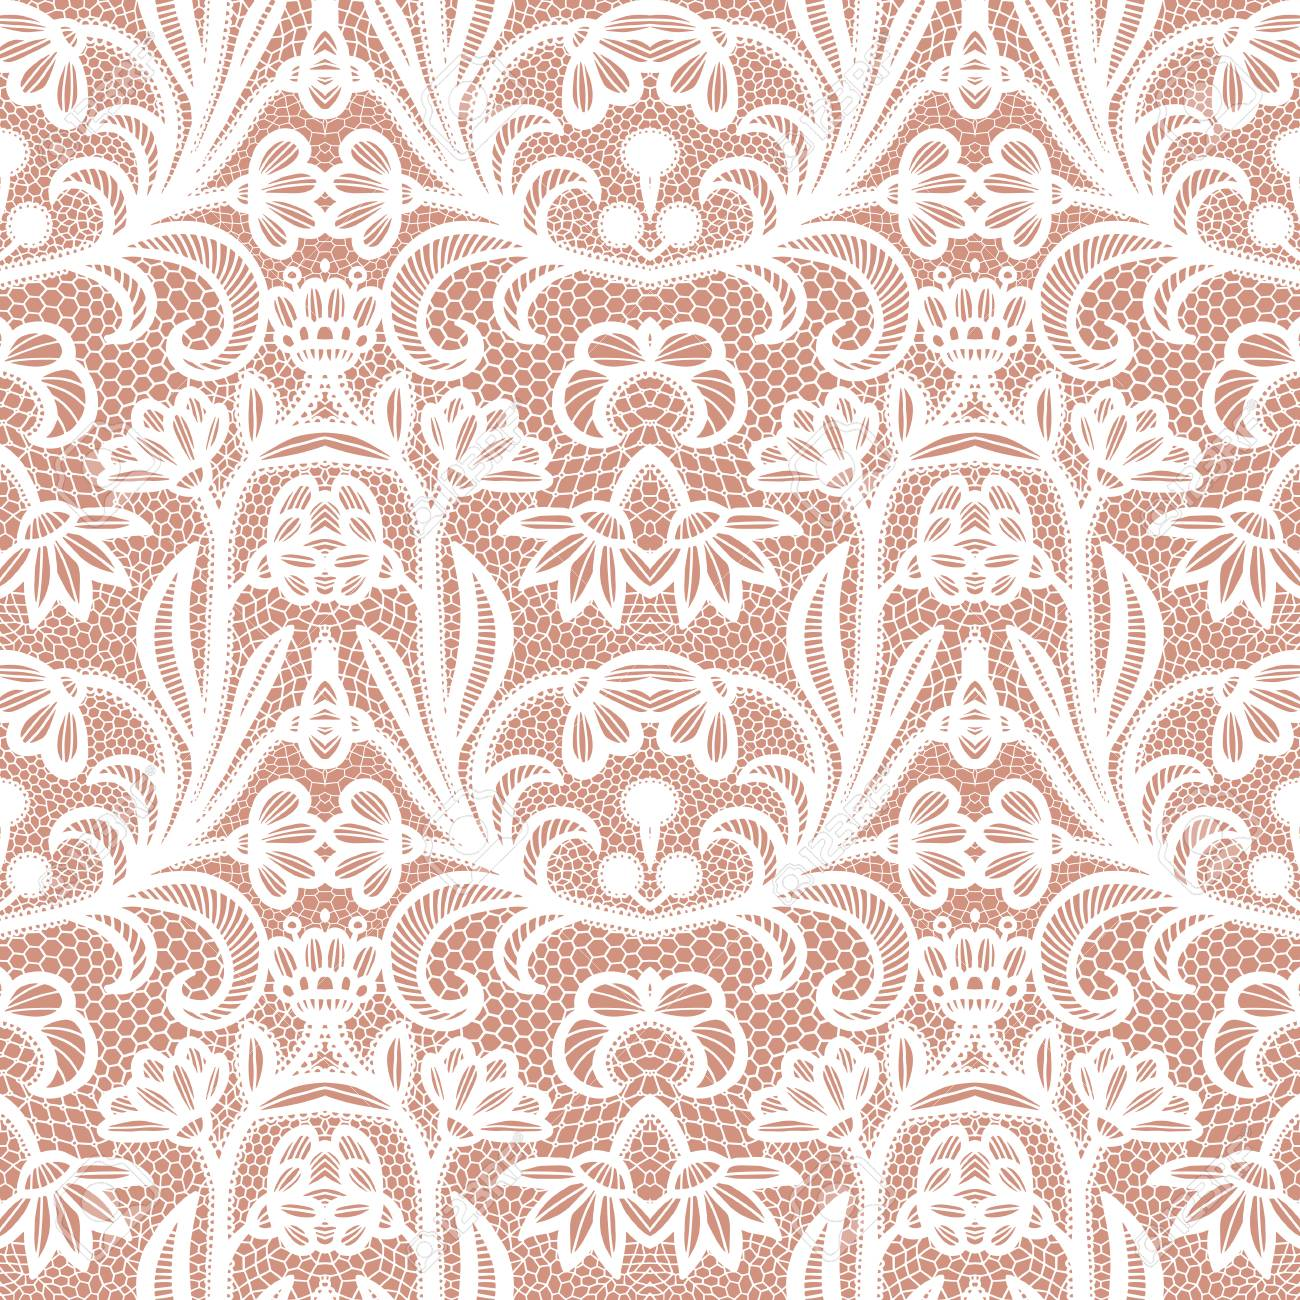 Lace black seamless pattern with flowers on white background - 126897589